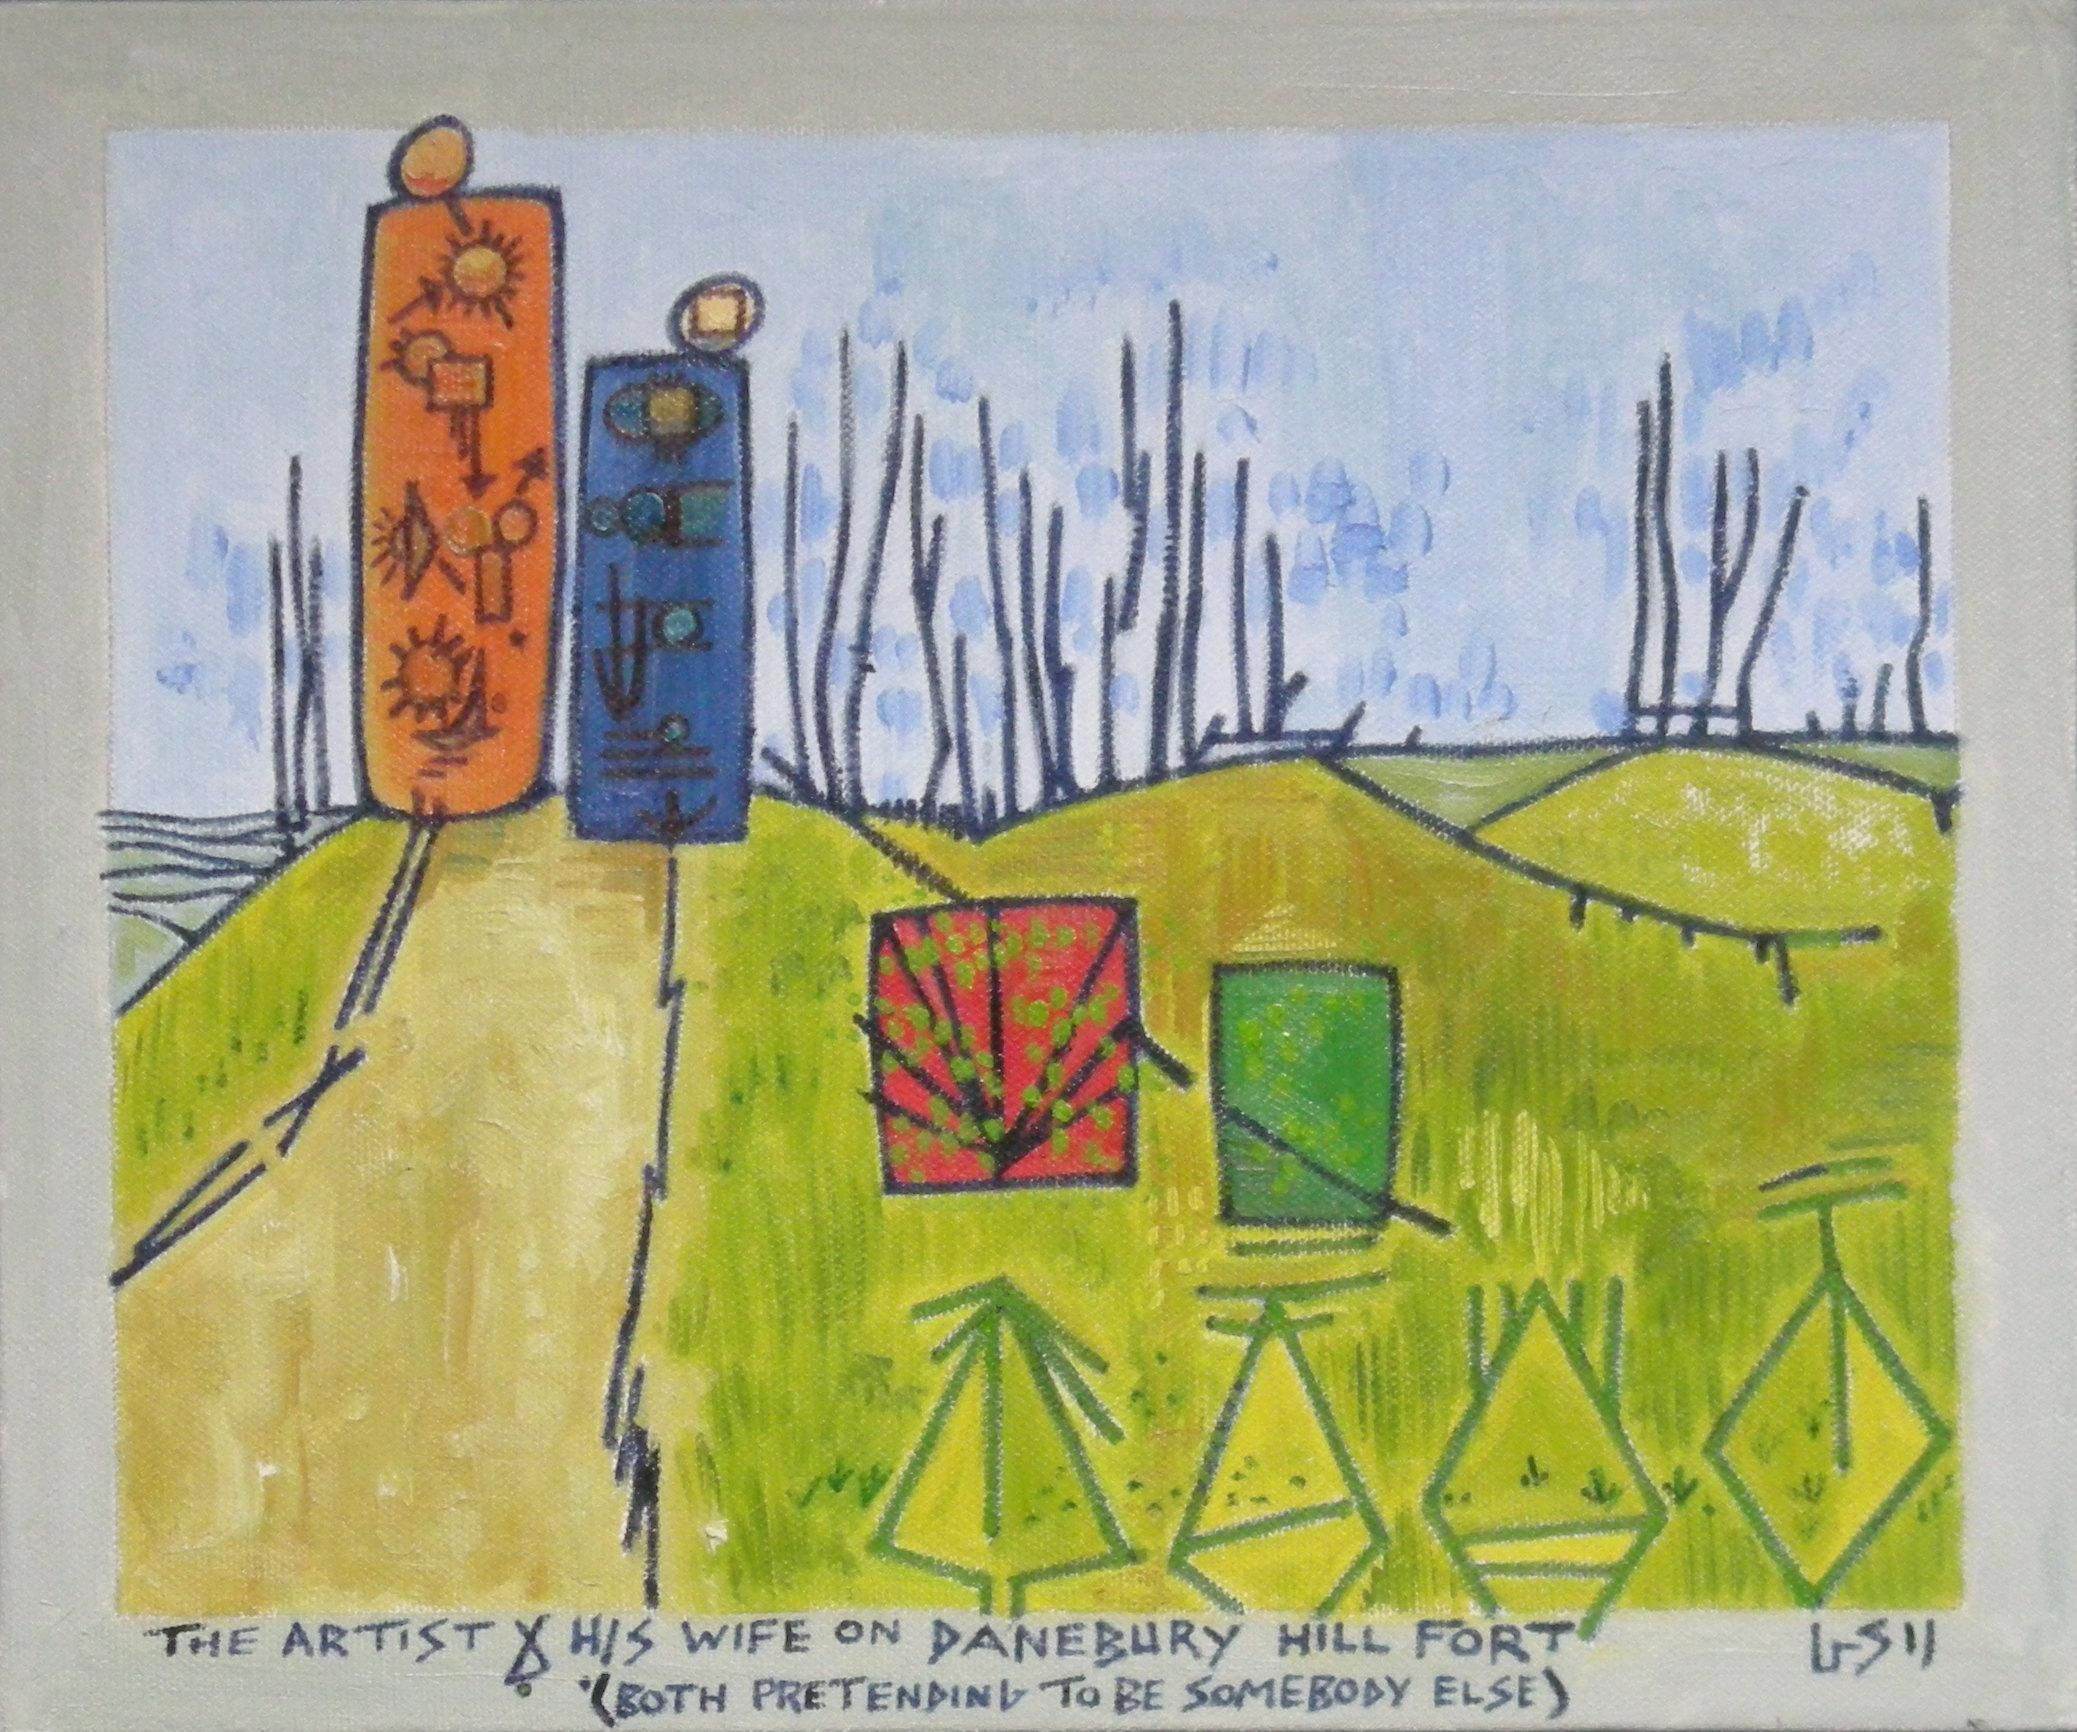 Gerald Shepherd: The Artist And His Wife On Danebury Hill Fort